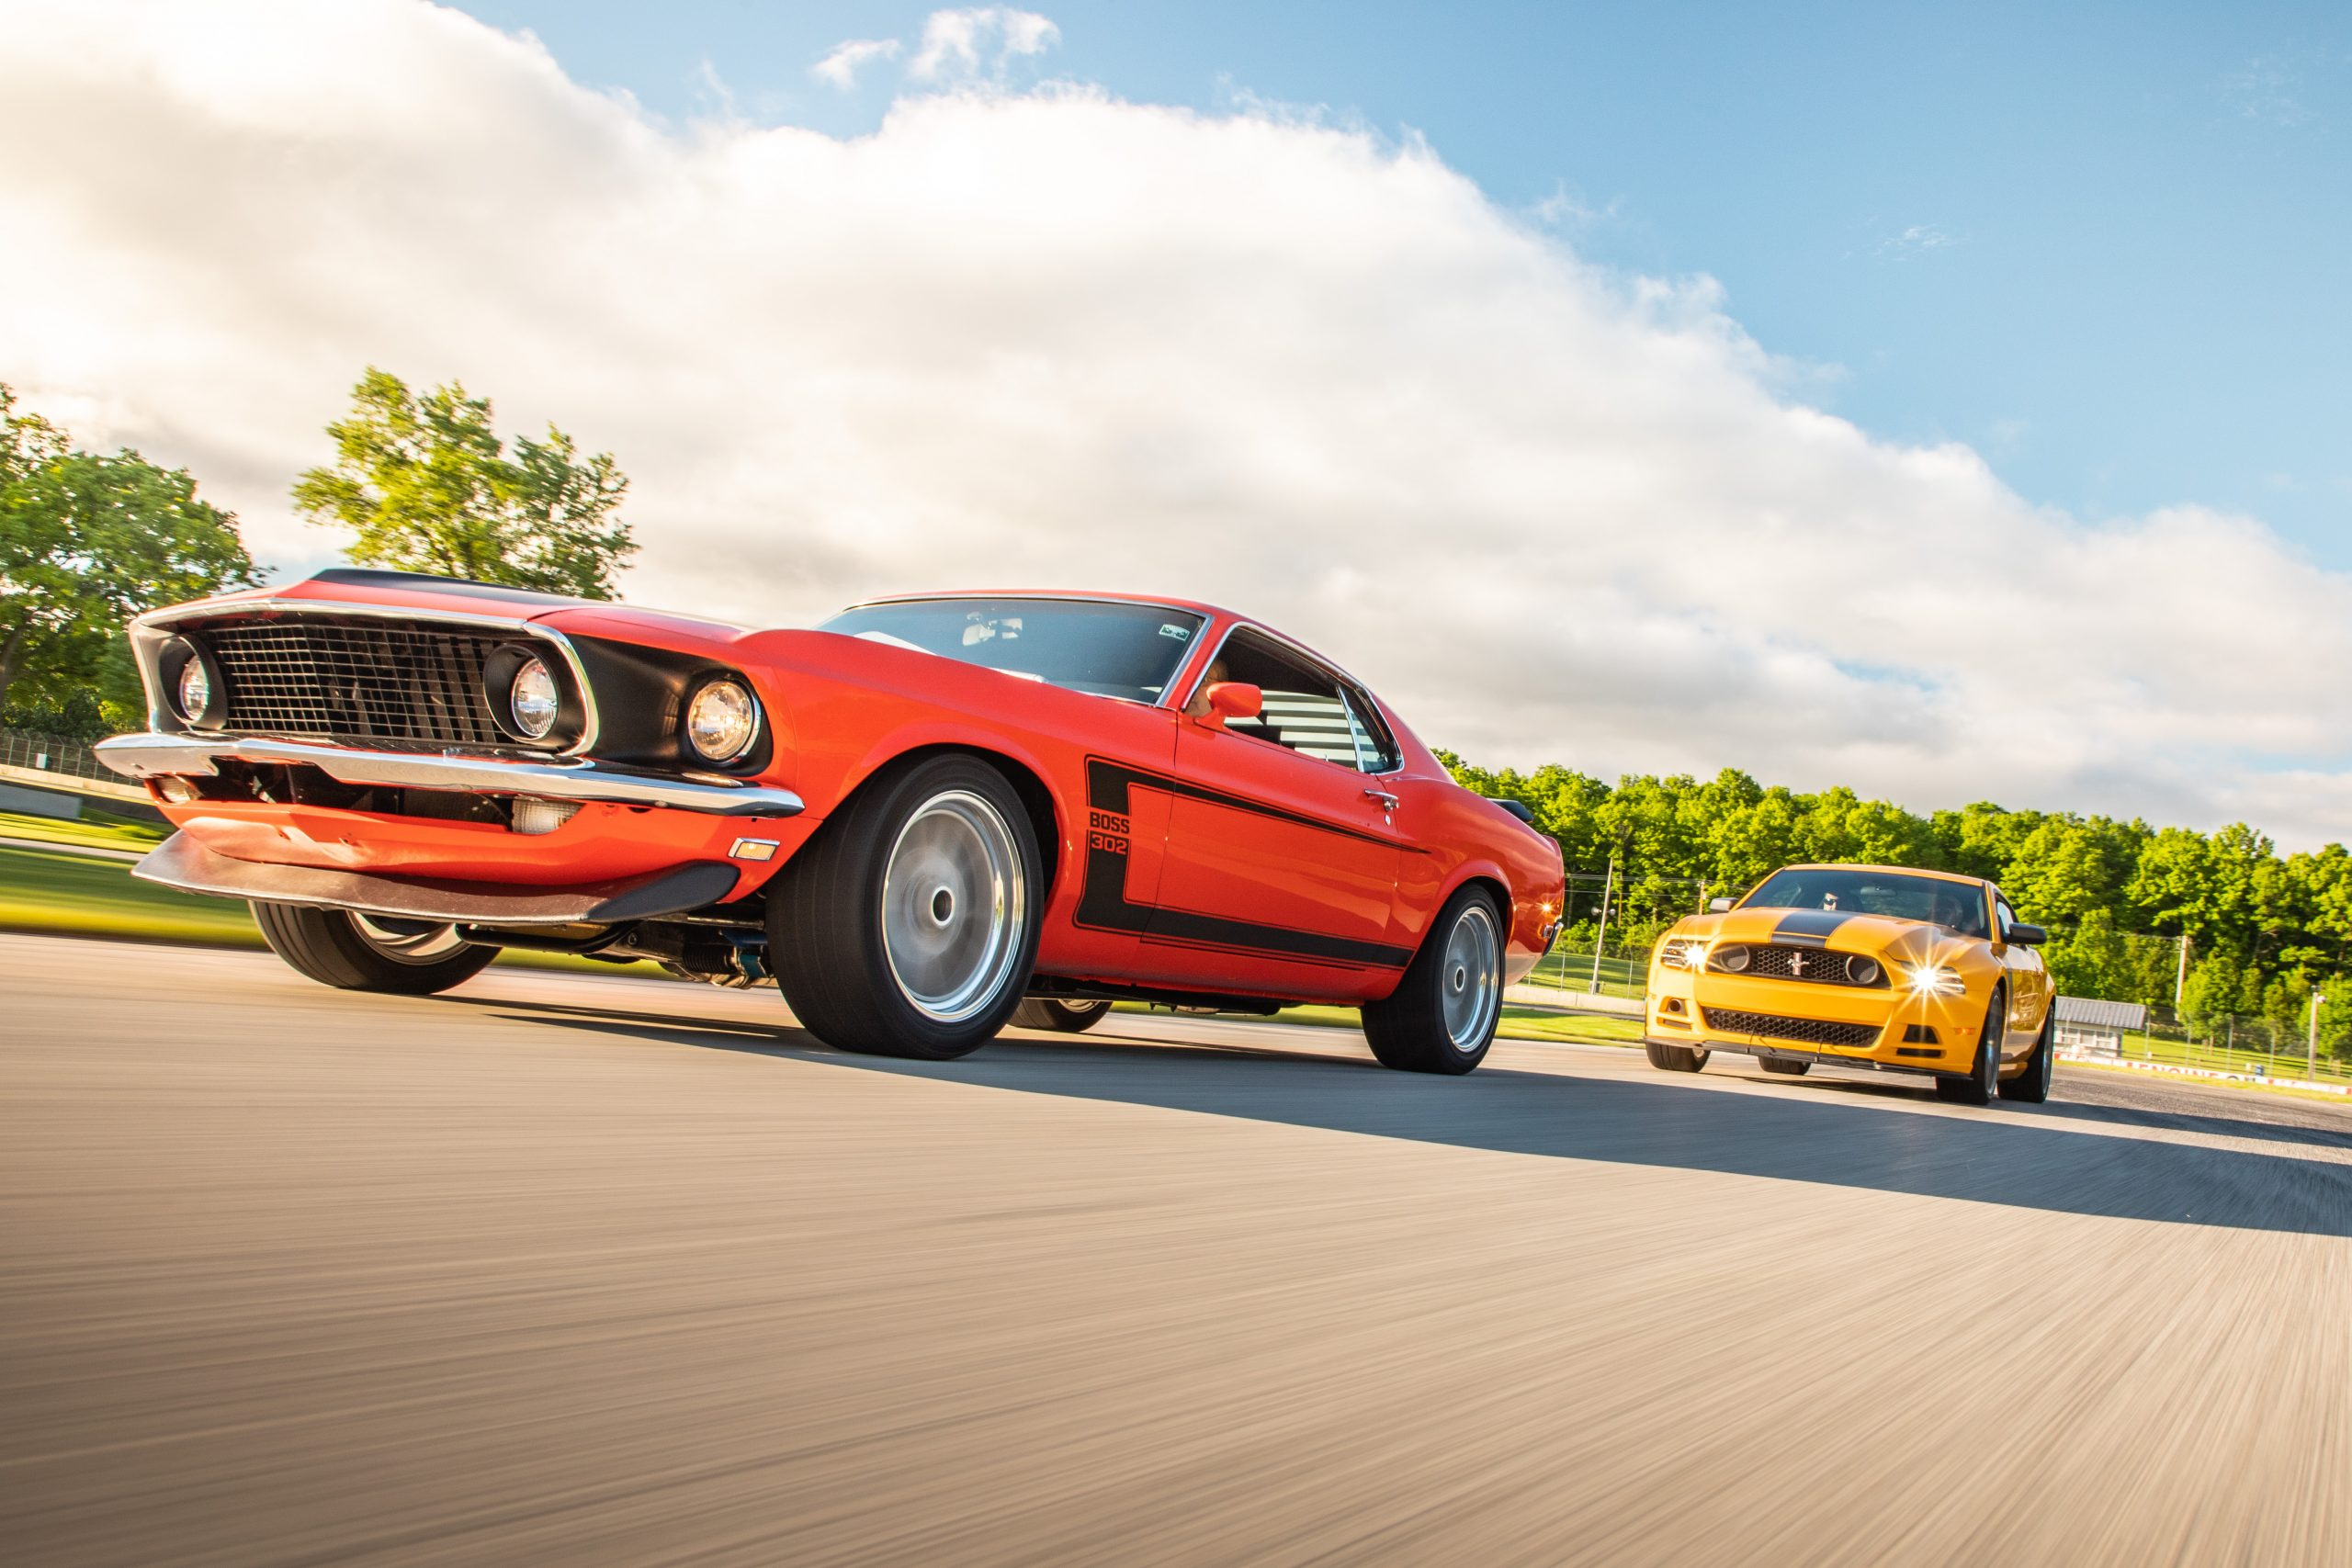 ford mustang boss 302 new vs old dynamic track action